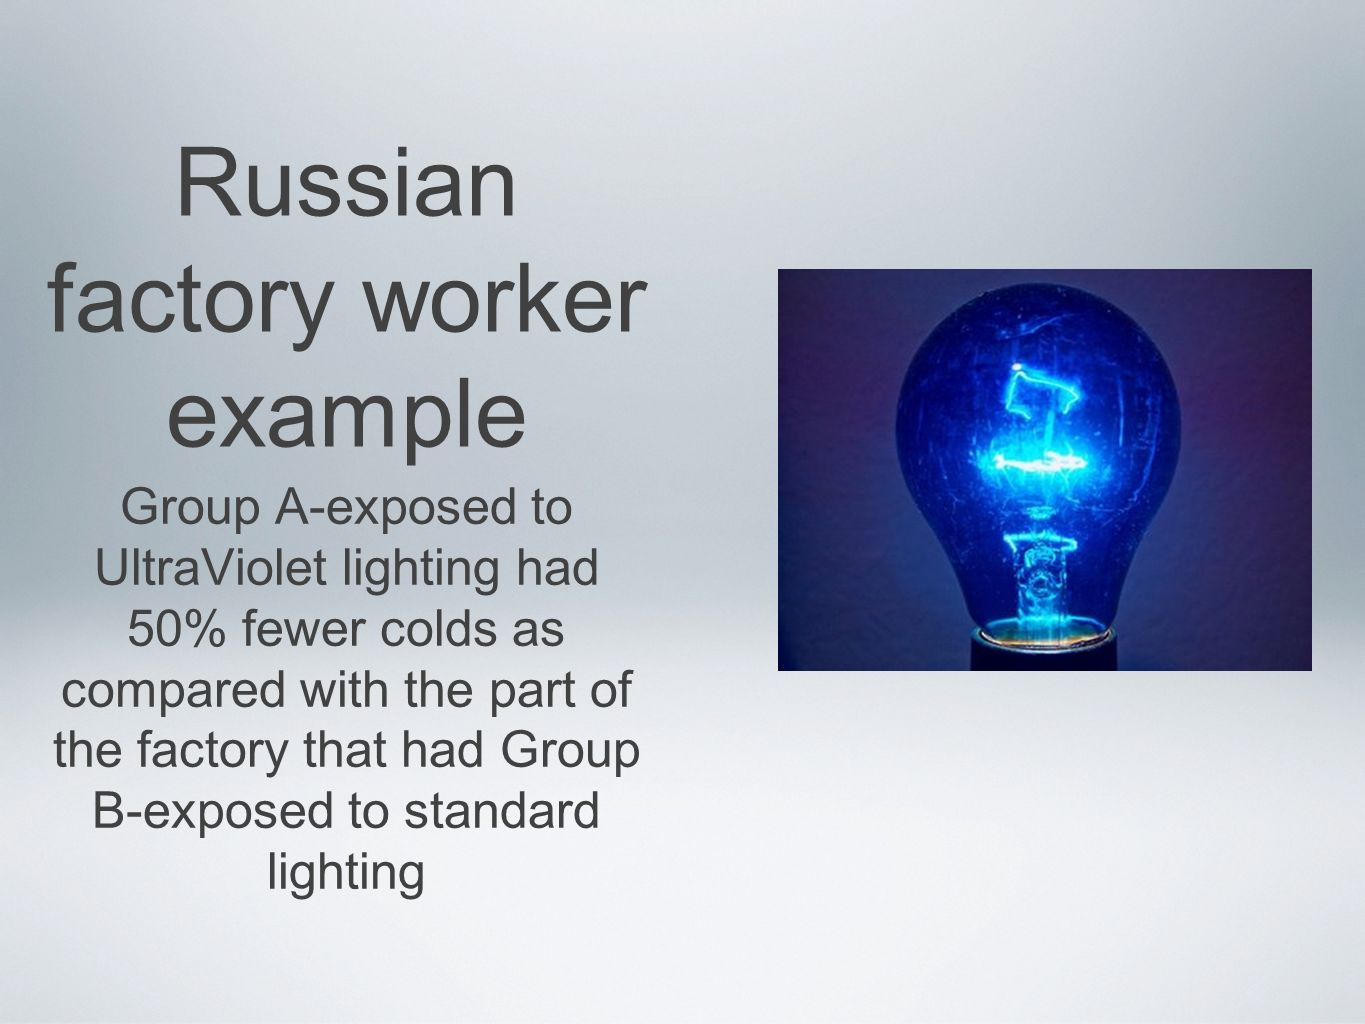 Russian factory worker example Group A-exposed to UltraViolet lighting had 50% fewer colds as compared with the part of the factory that had Group B-exposed to standard lighting